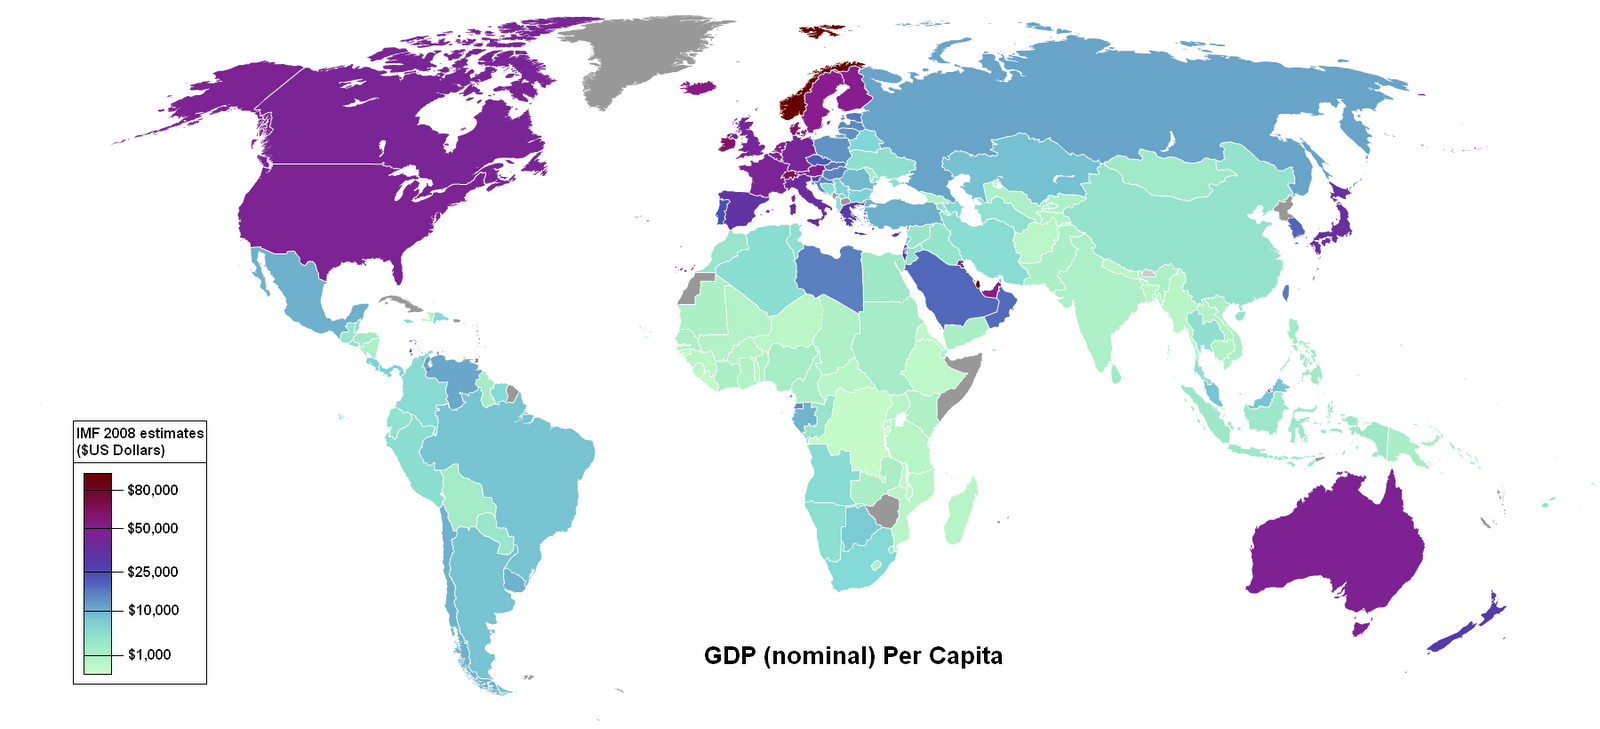 external image GDP_nominal_per_capita_world_map_IMF_2008.png